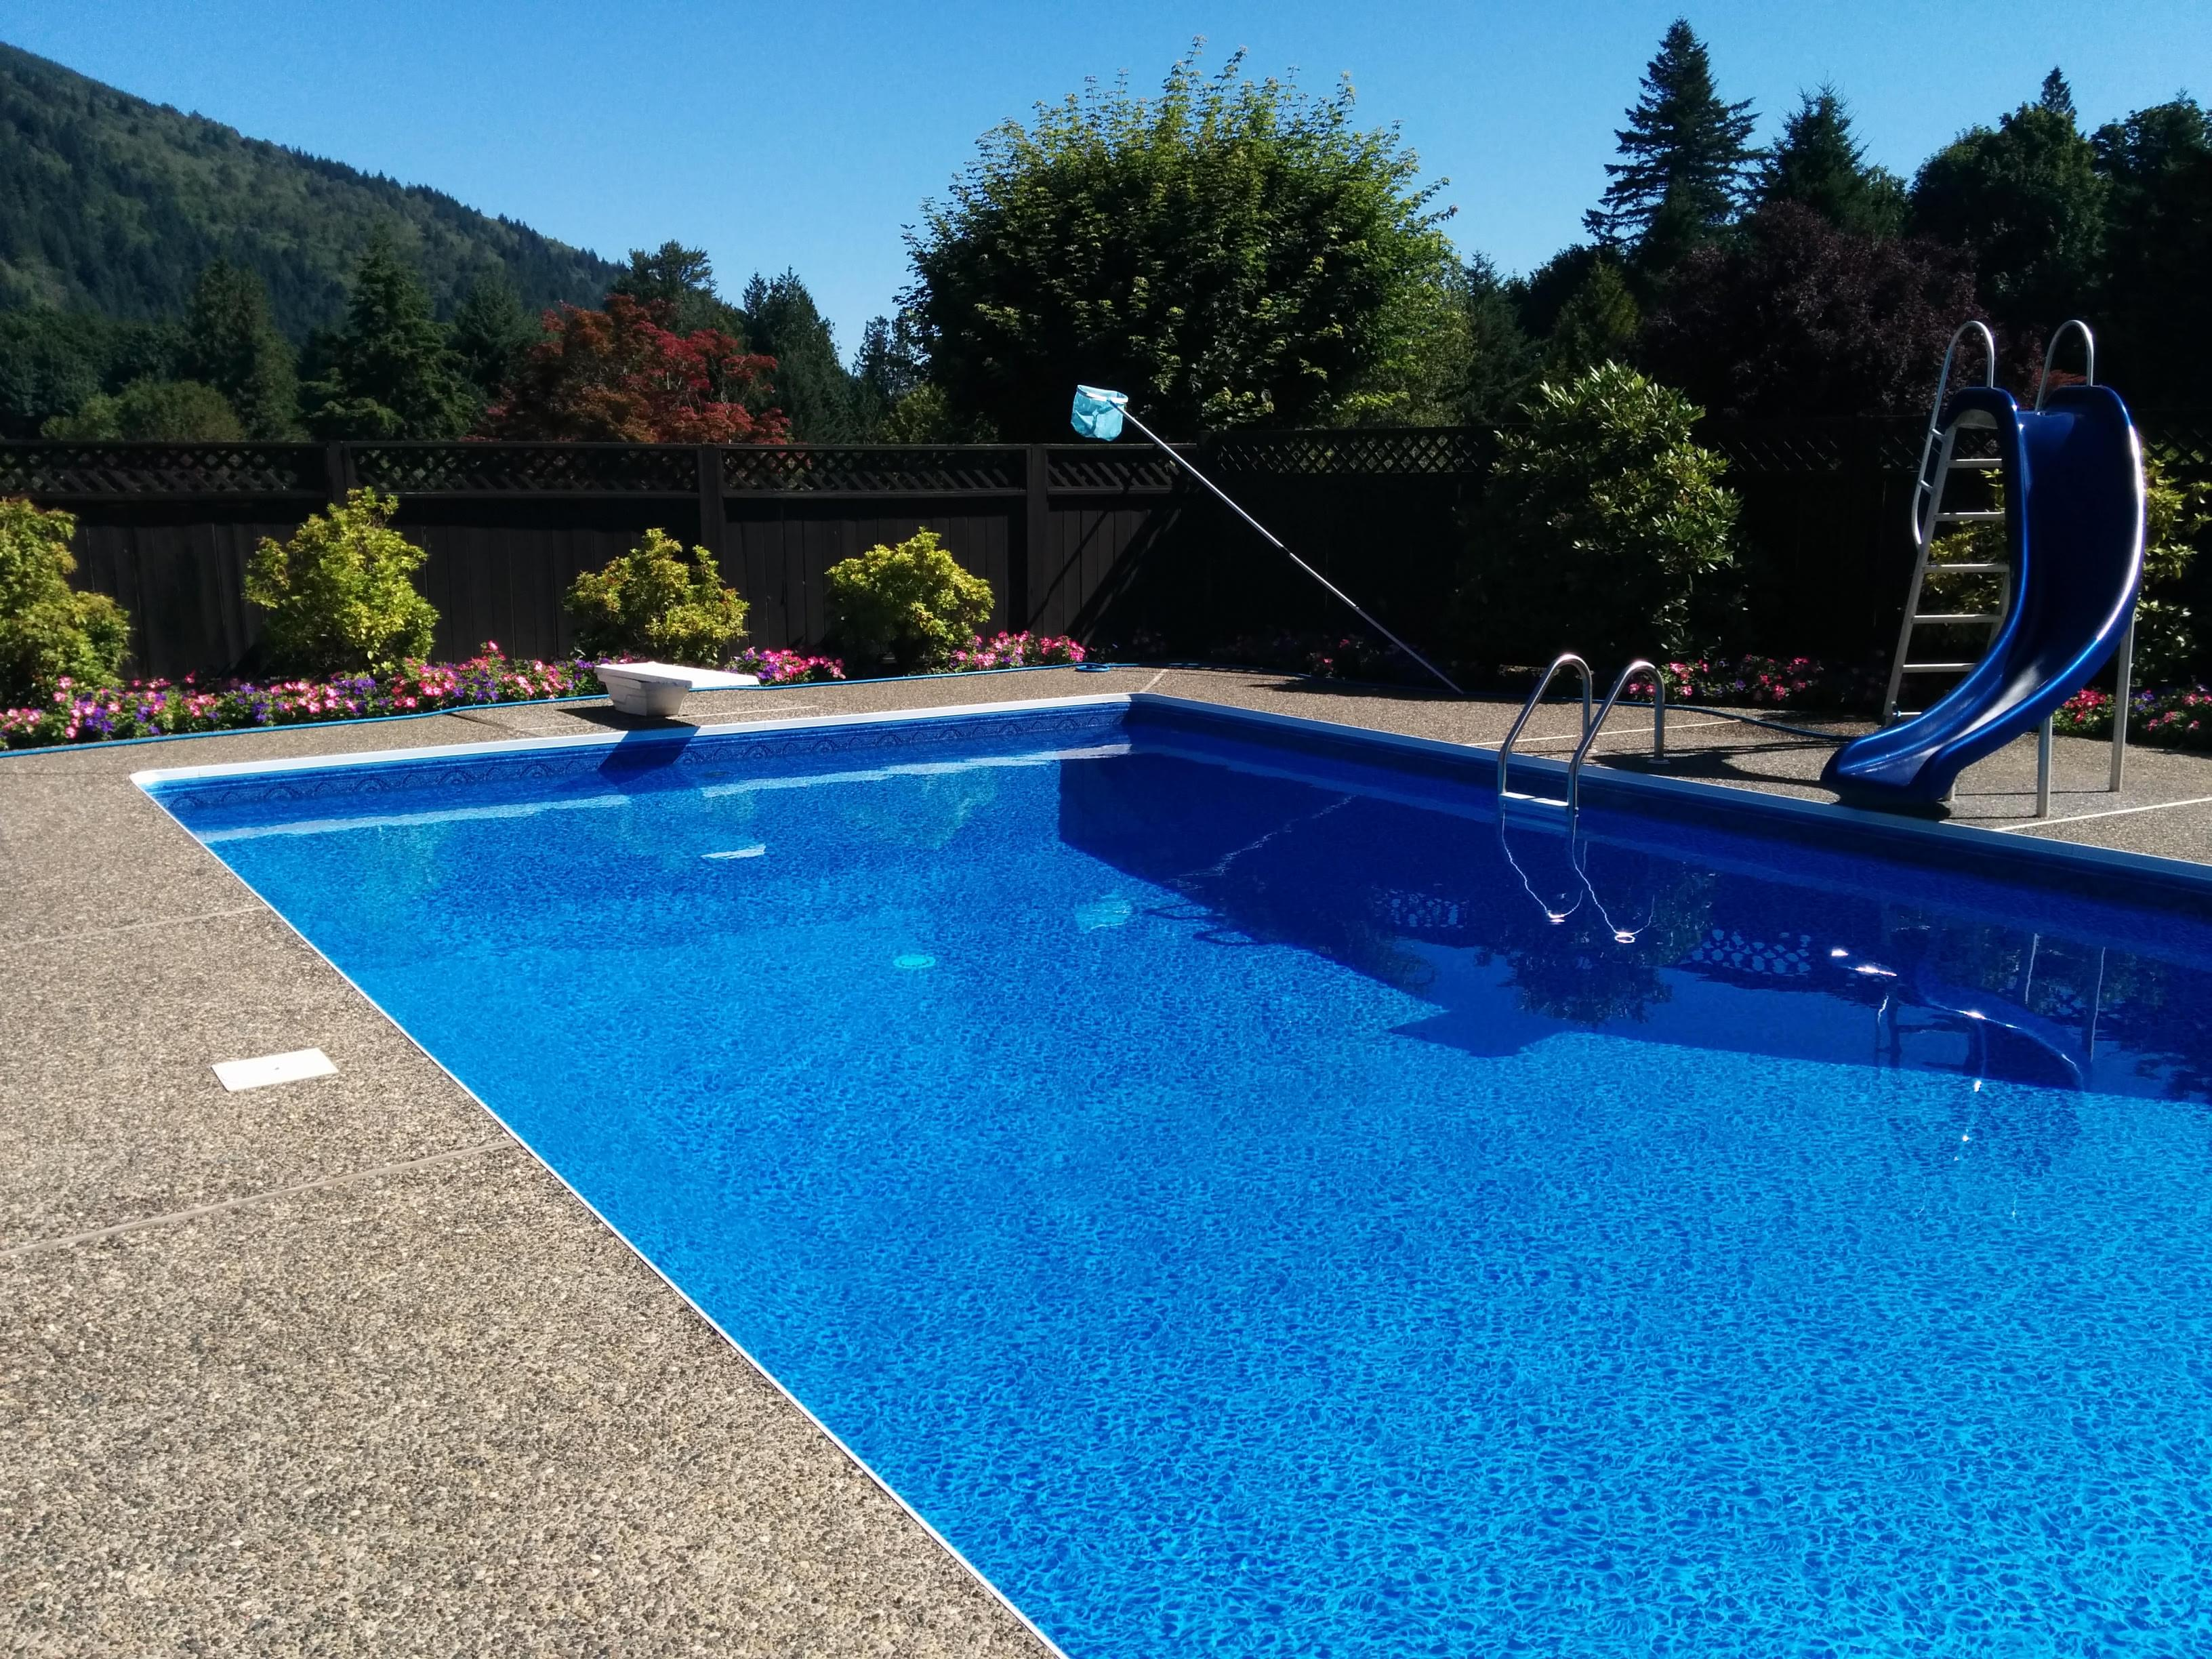 Swimmingpool  Inground Pools - Pool Supplies Canada